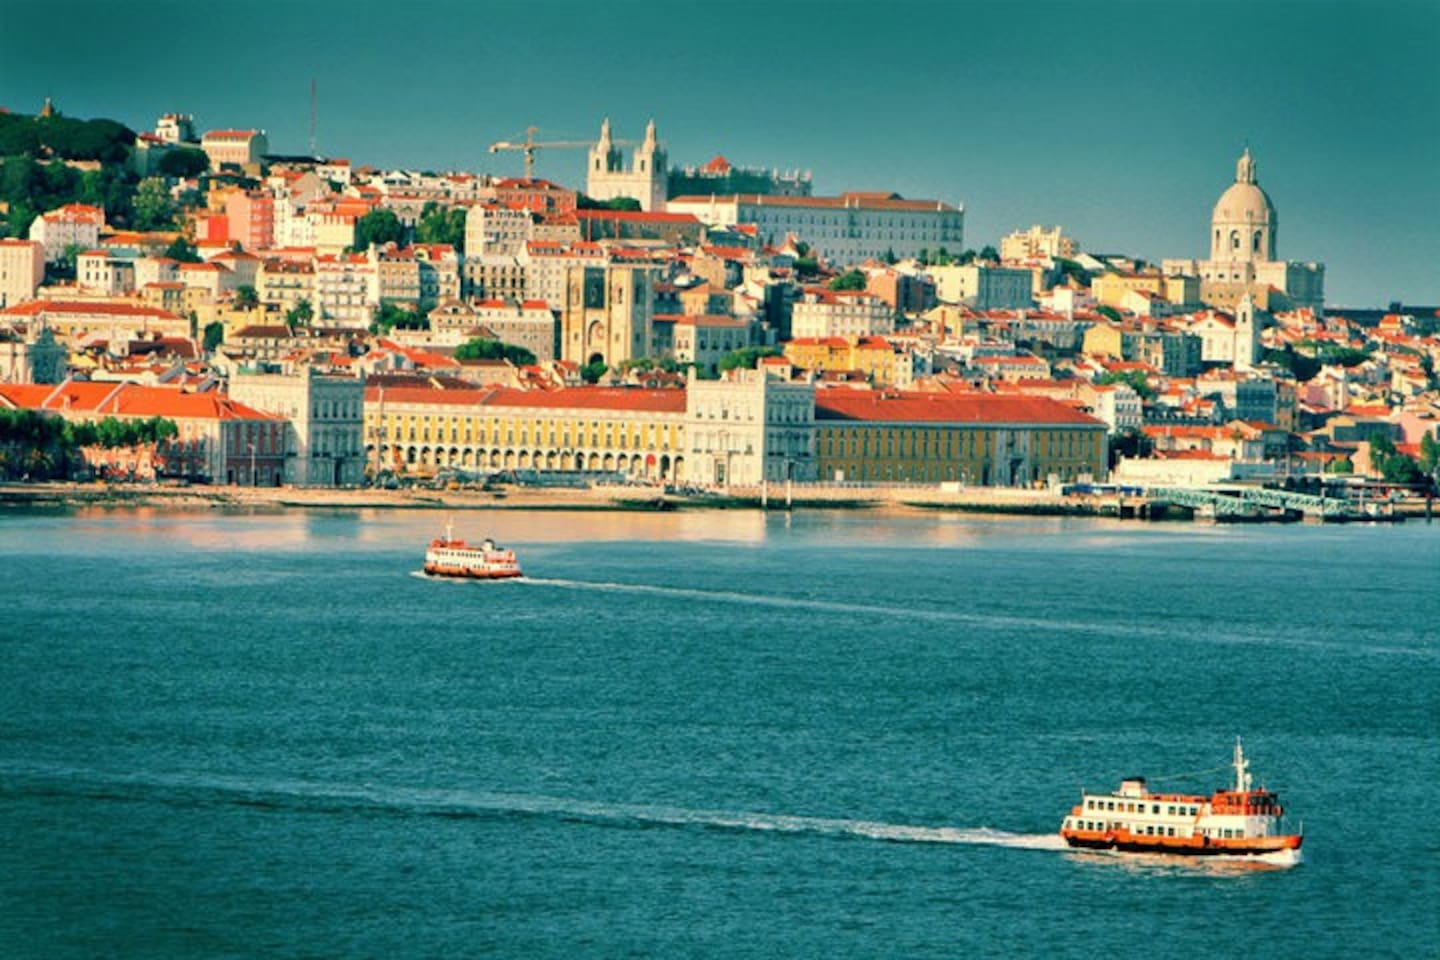 The REAL VIEW of Lisbon that you only get in the south side of the River Tagus - Almada / Cacilhas.